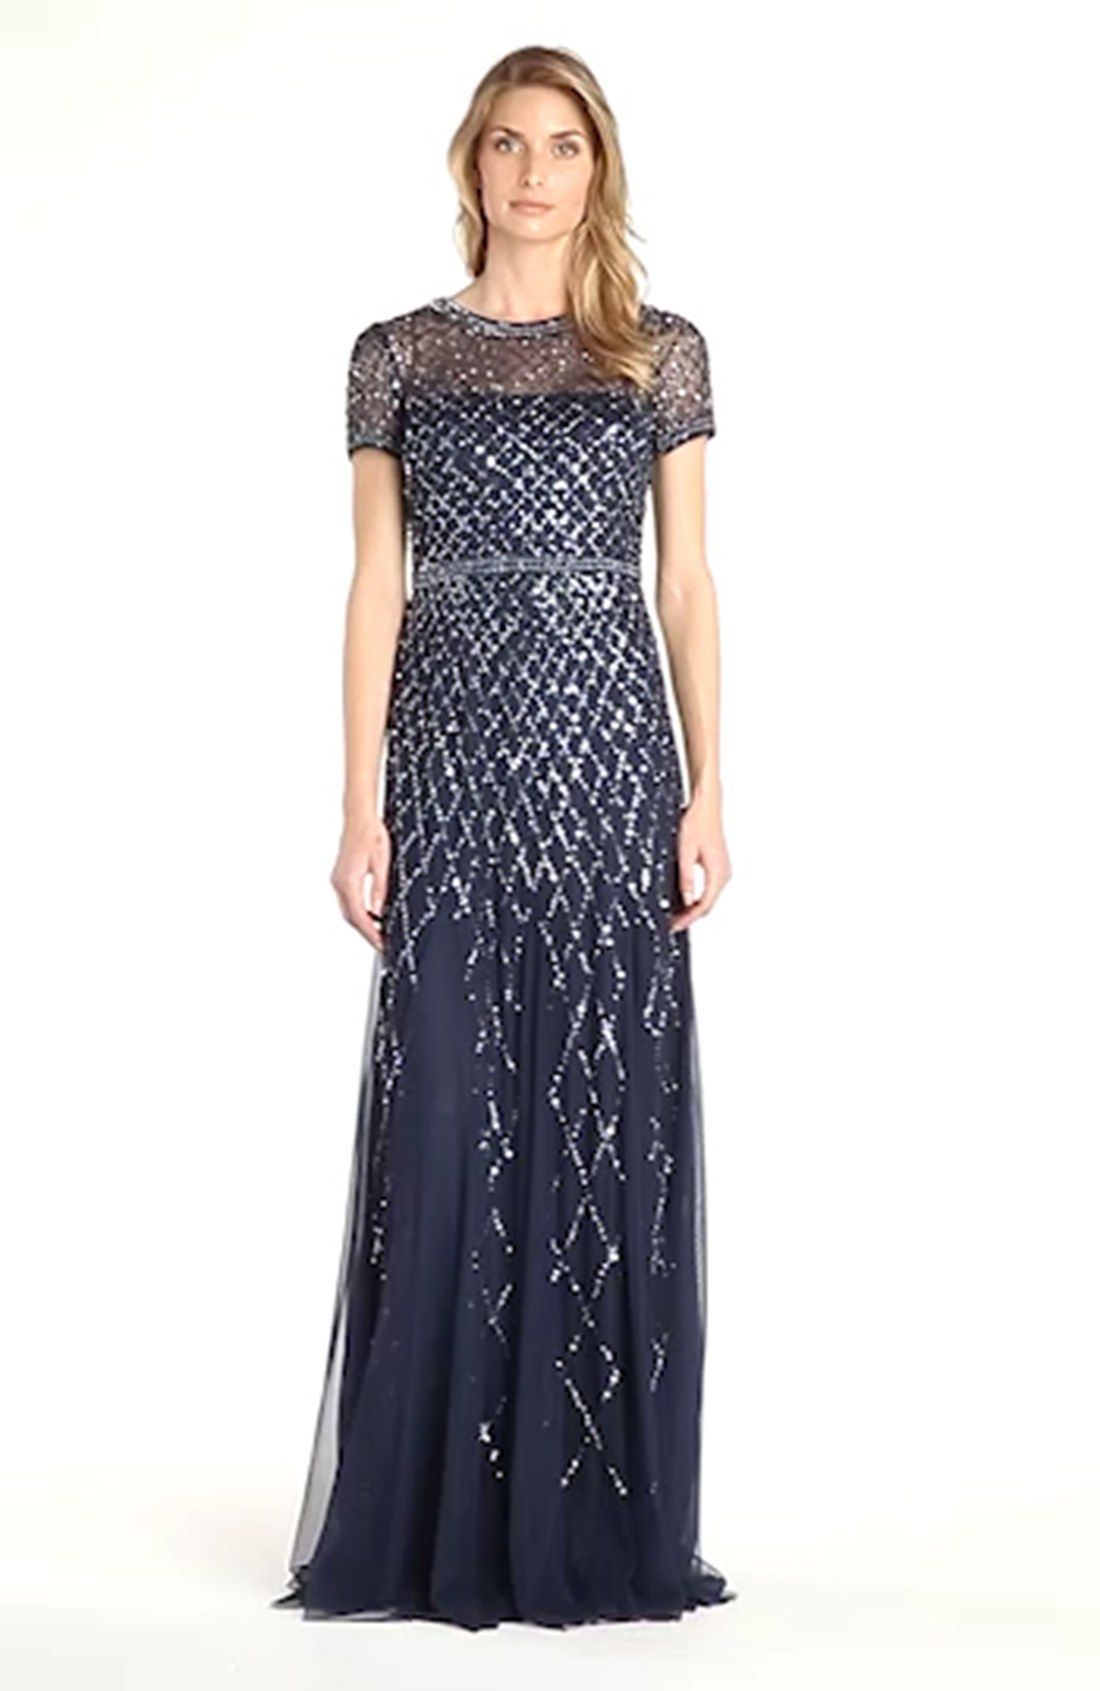 Beaded Mesh Gown Adrianna Papell Nordstrom And Petite